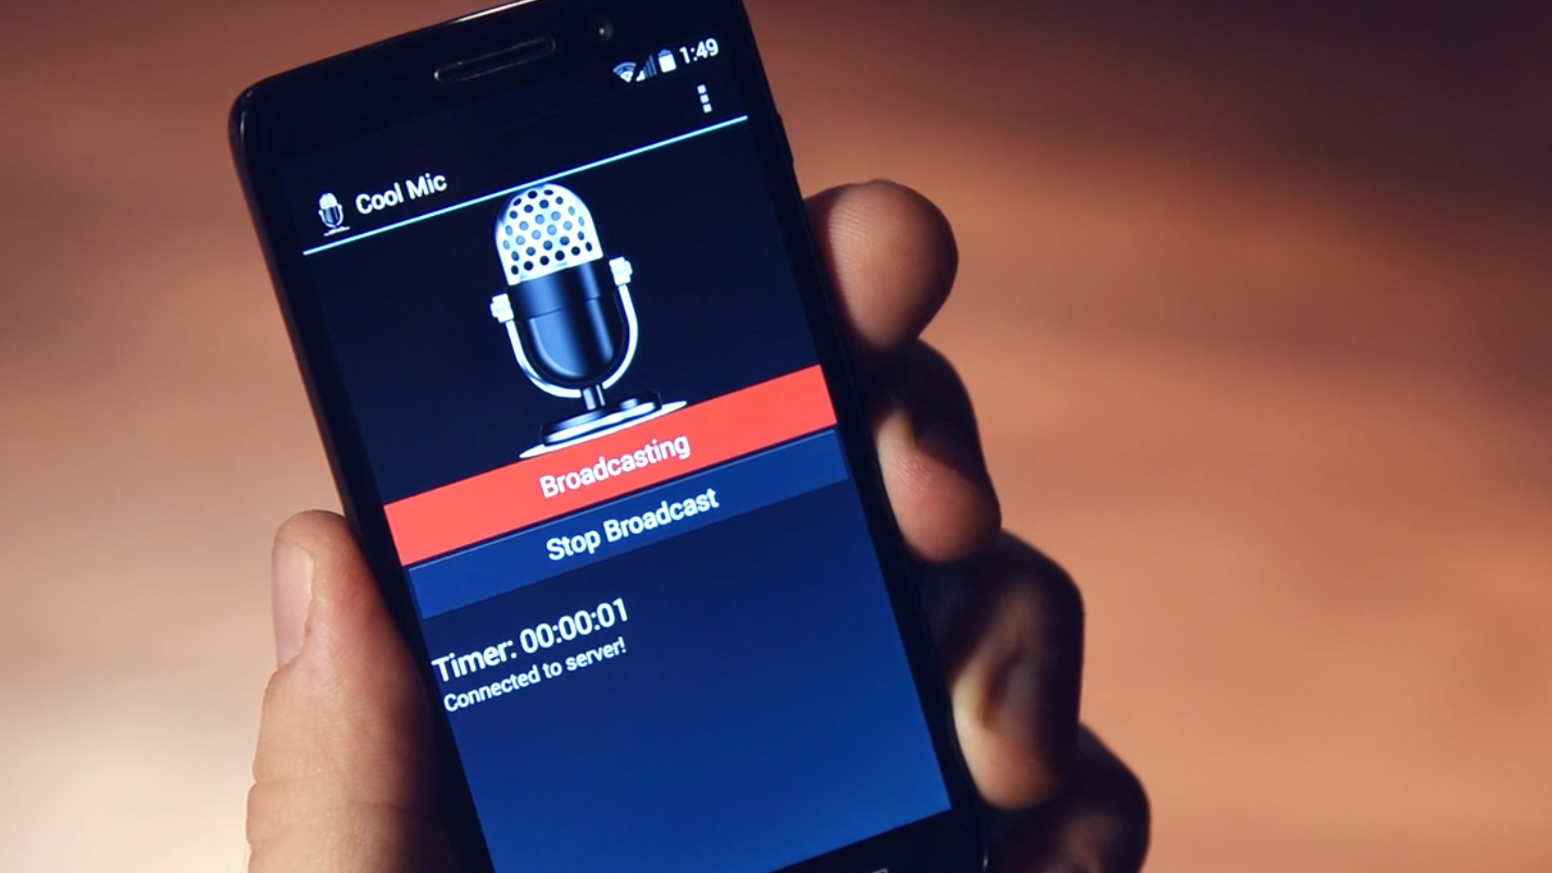 Cool Mic: Open Source Audio Livestreaming App - Android by Jordan